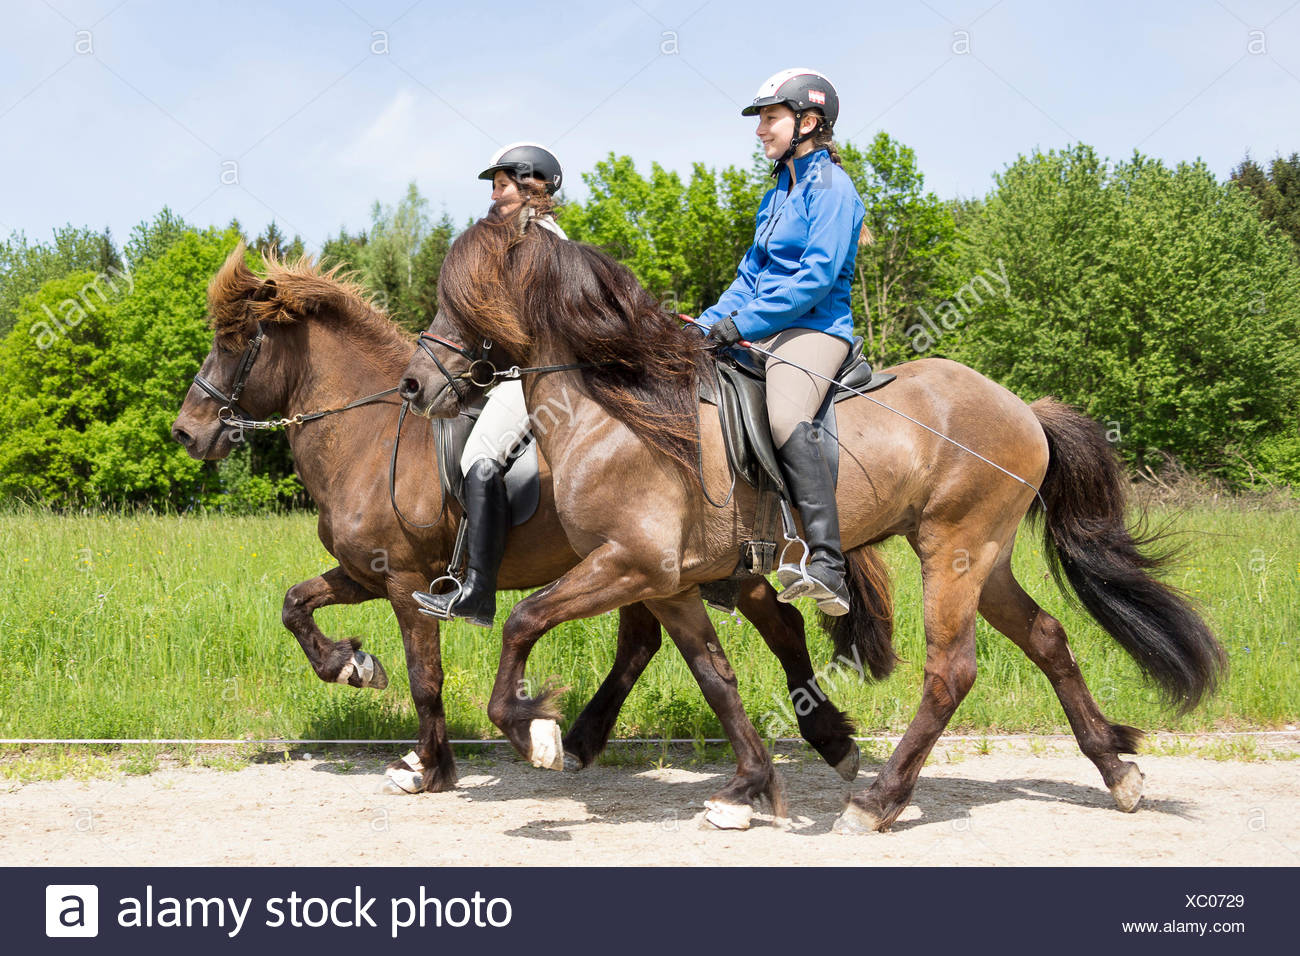 Icelandic Horse. Two women performing the toelt on stallionse. Austria - Stock Image